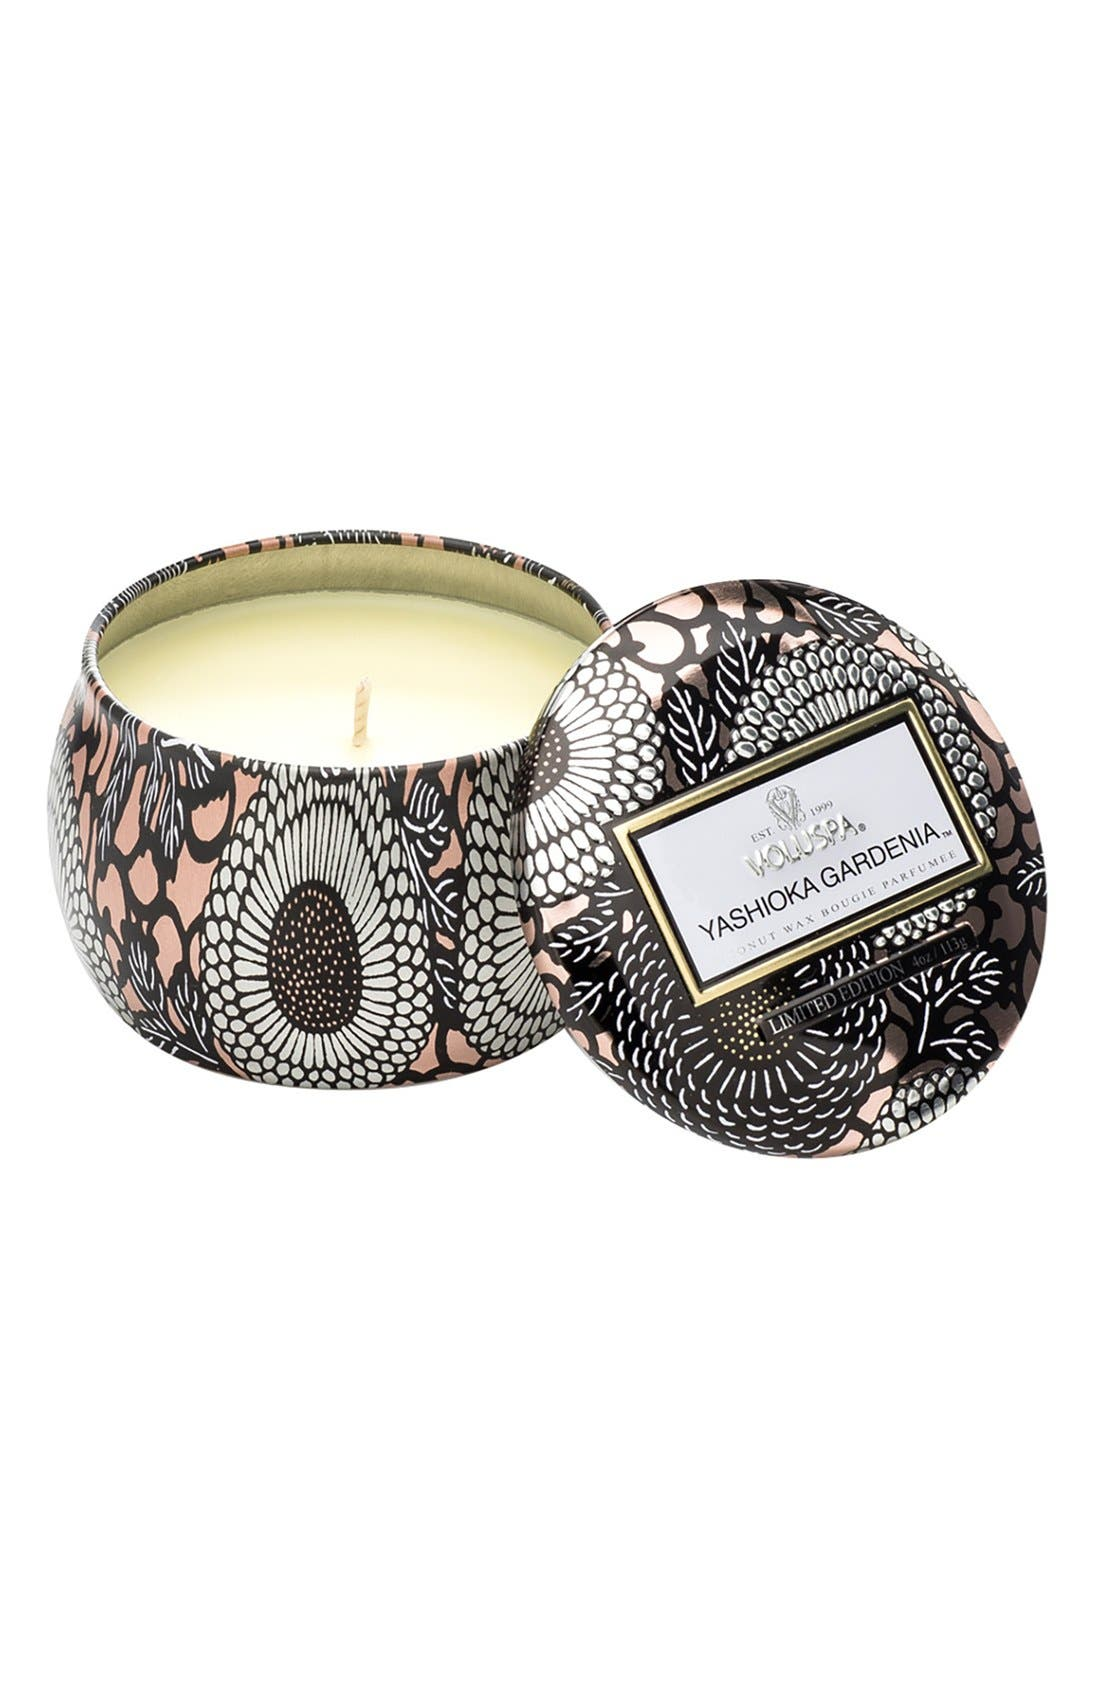 Main Image - Voluspa Japonica - Yashioka Gardenia Petite Decorative Tin Candle (Limited Edition)